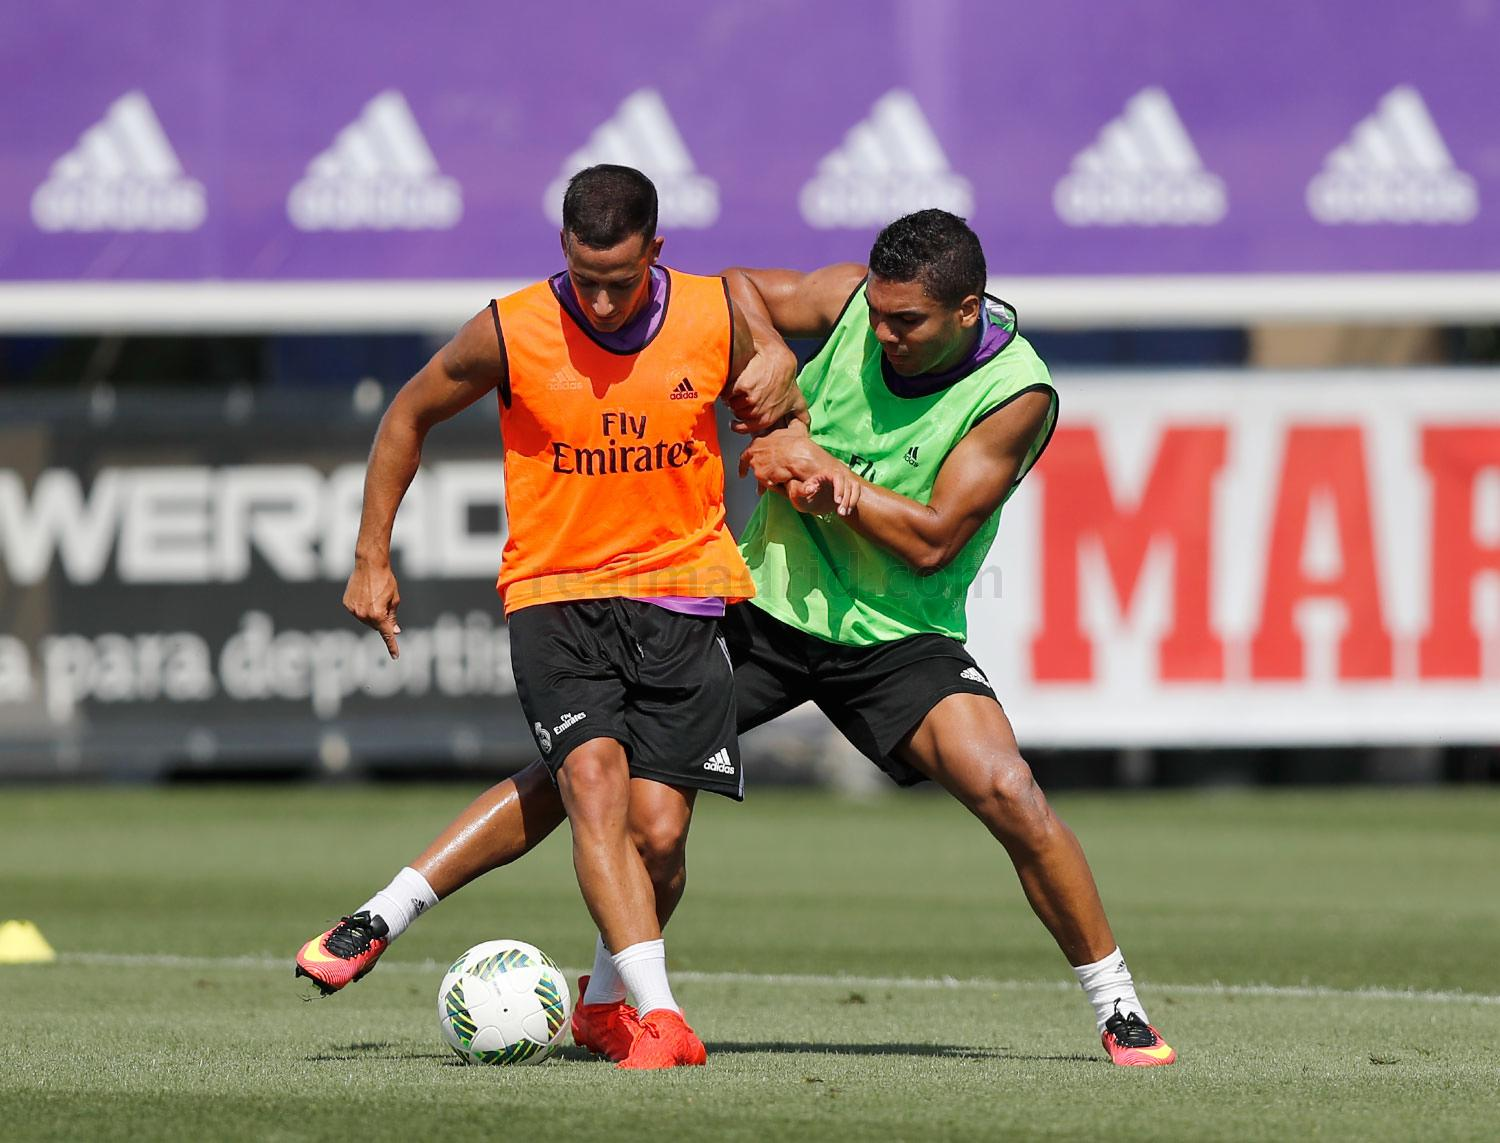 Real Madrid - Entrenamiento del Real Madrid - 15-08-2016